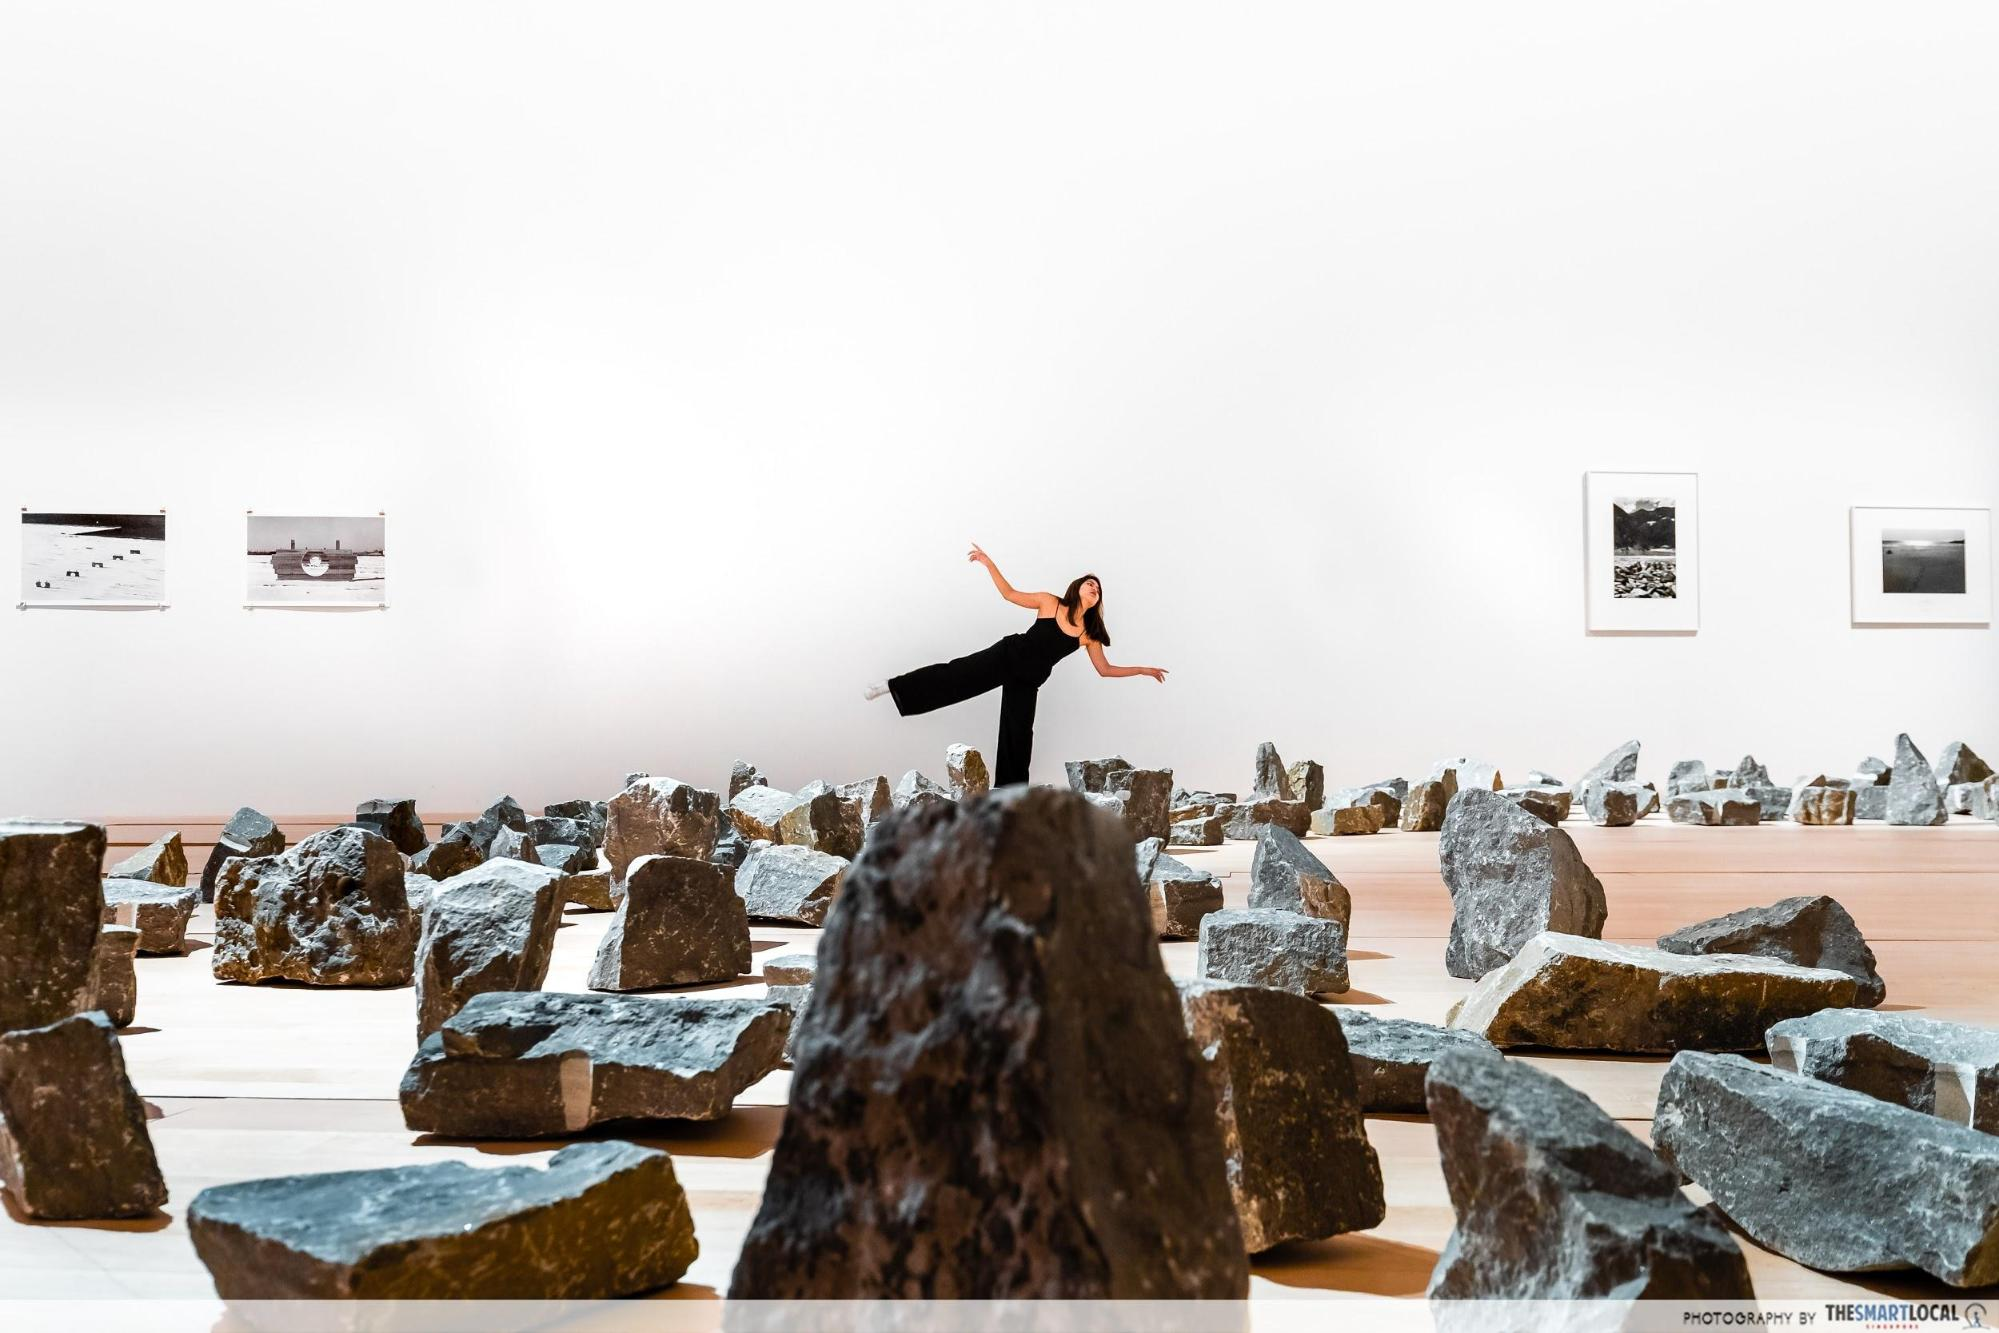 perspective shot of model balancing on rocks